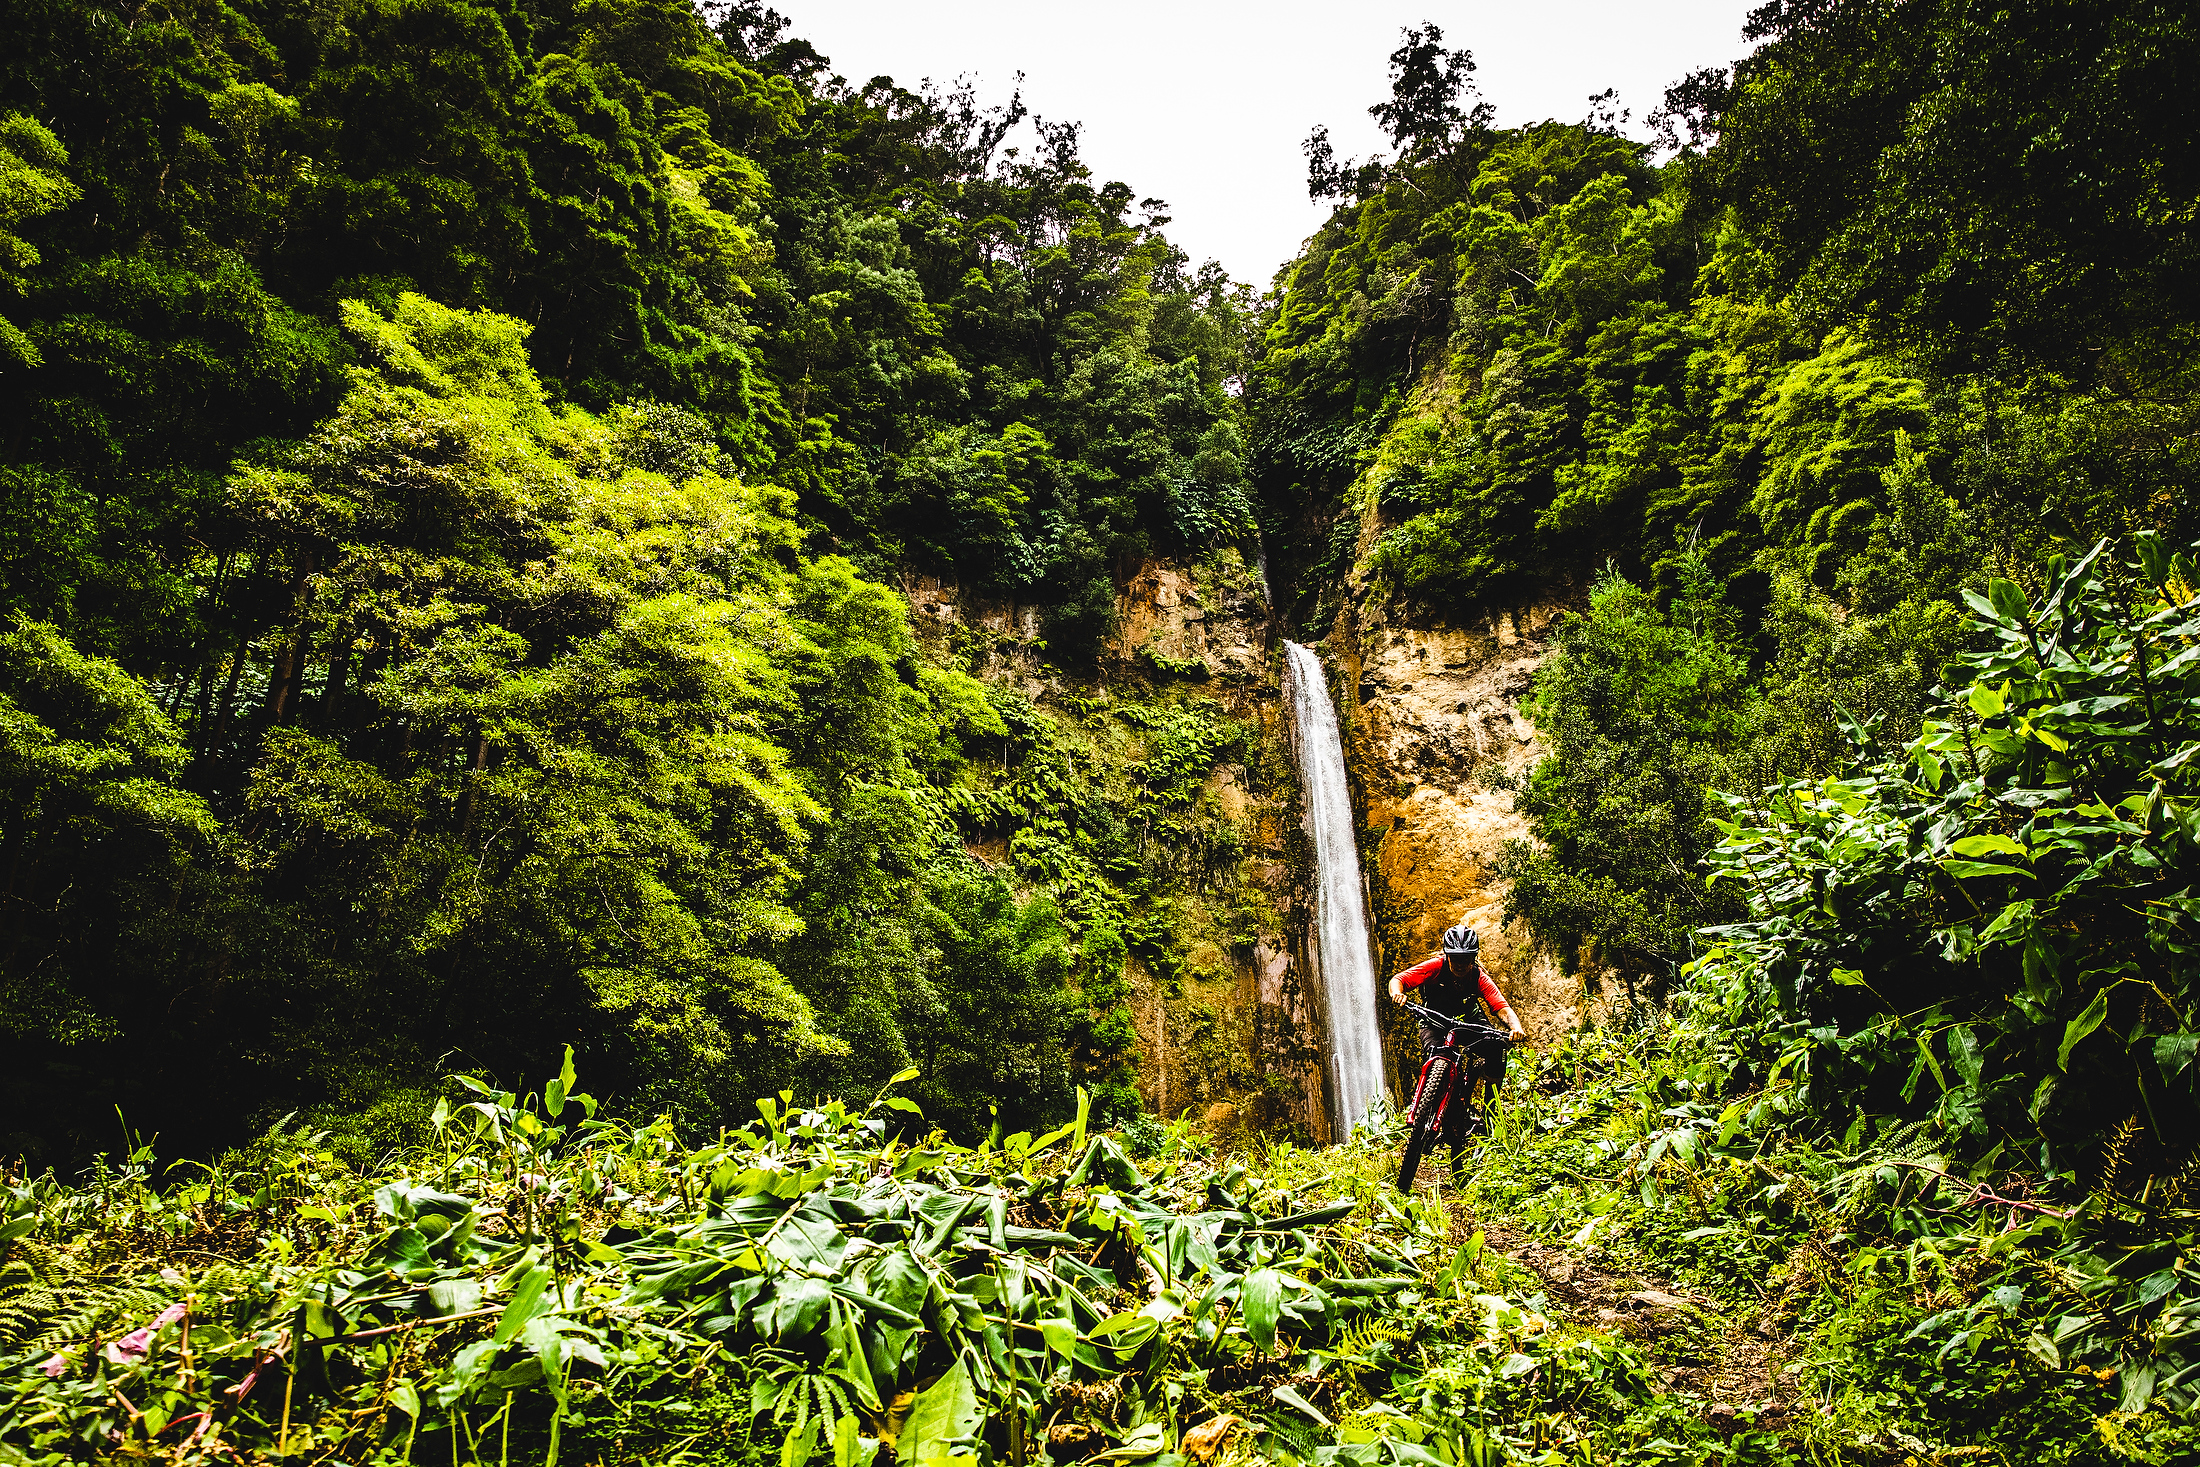 Azores_w3a0016